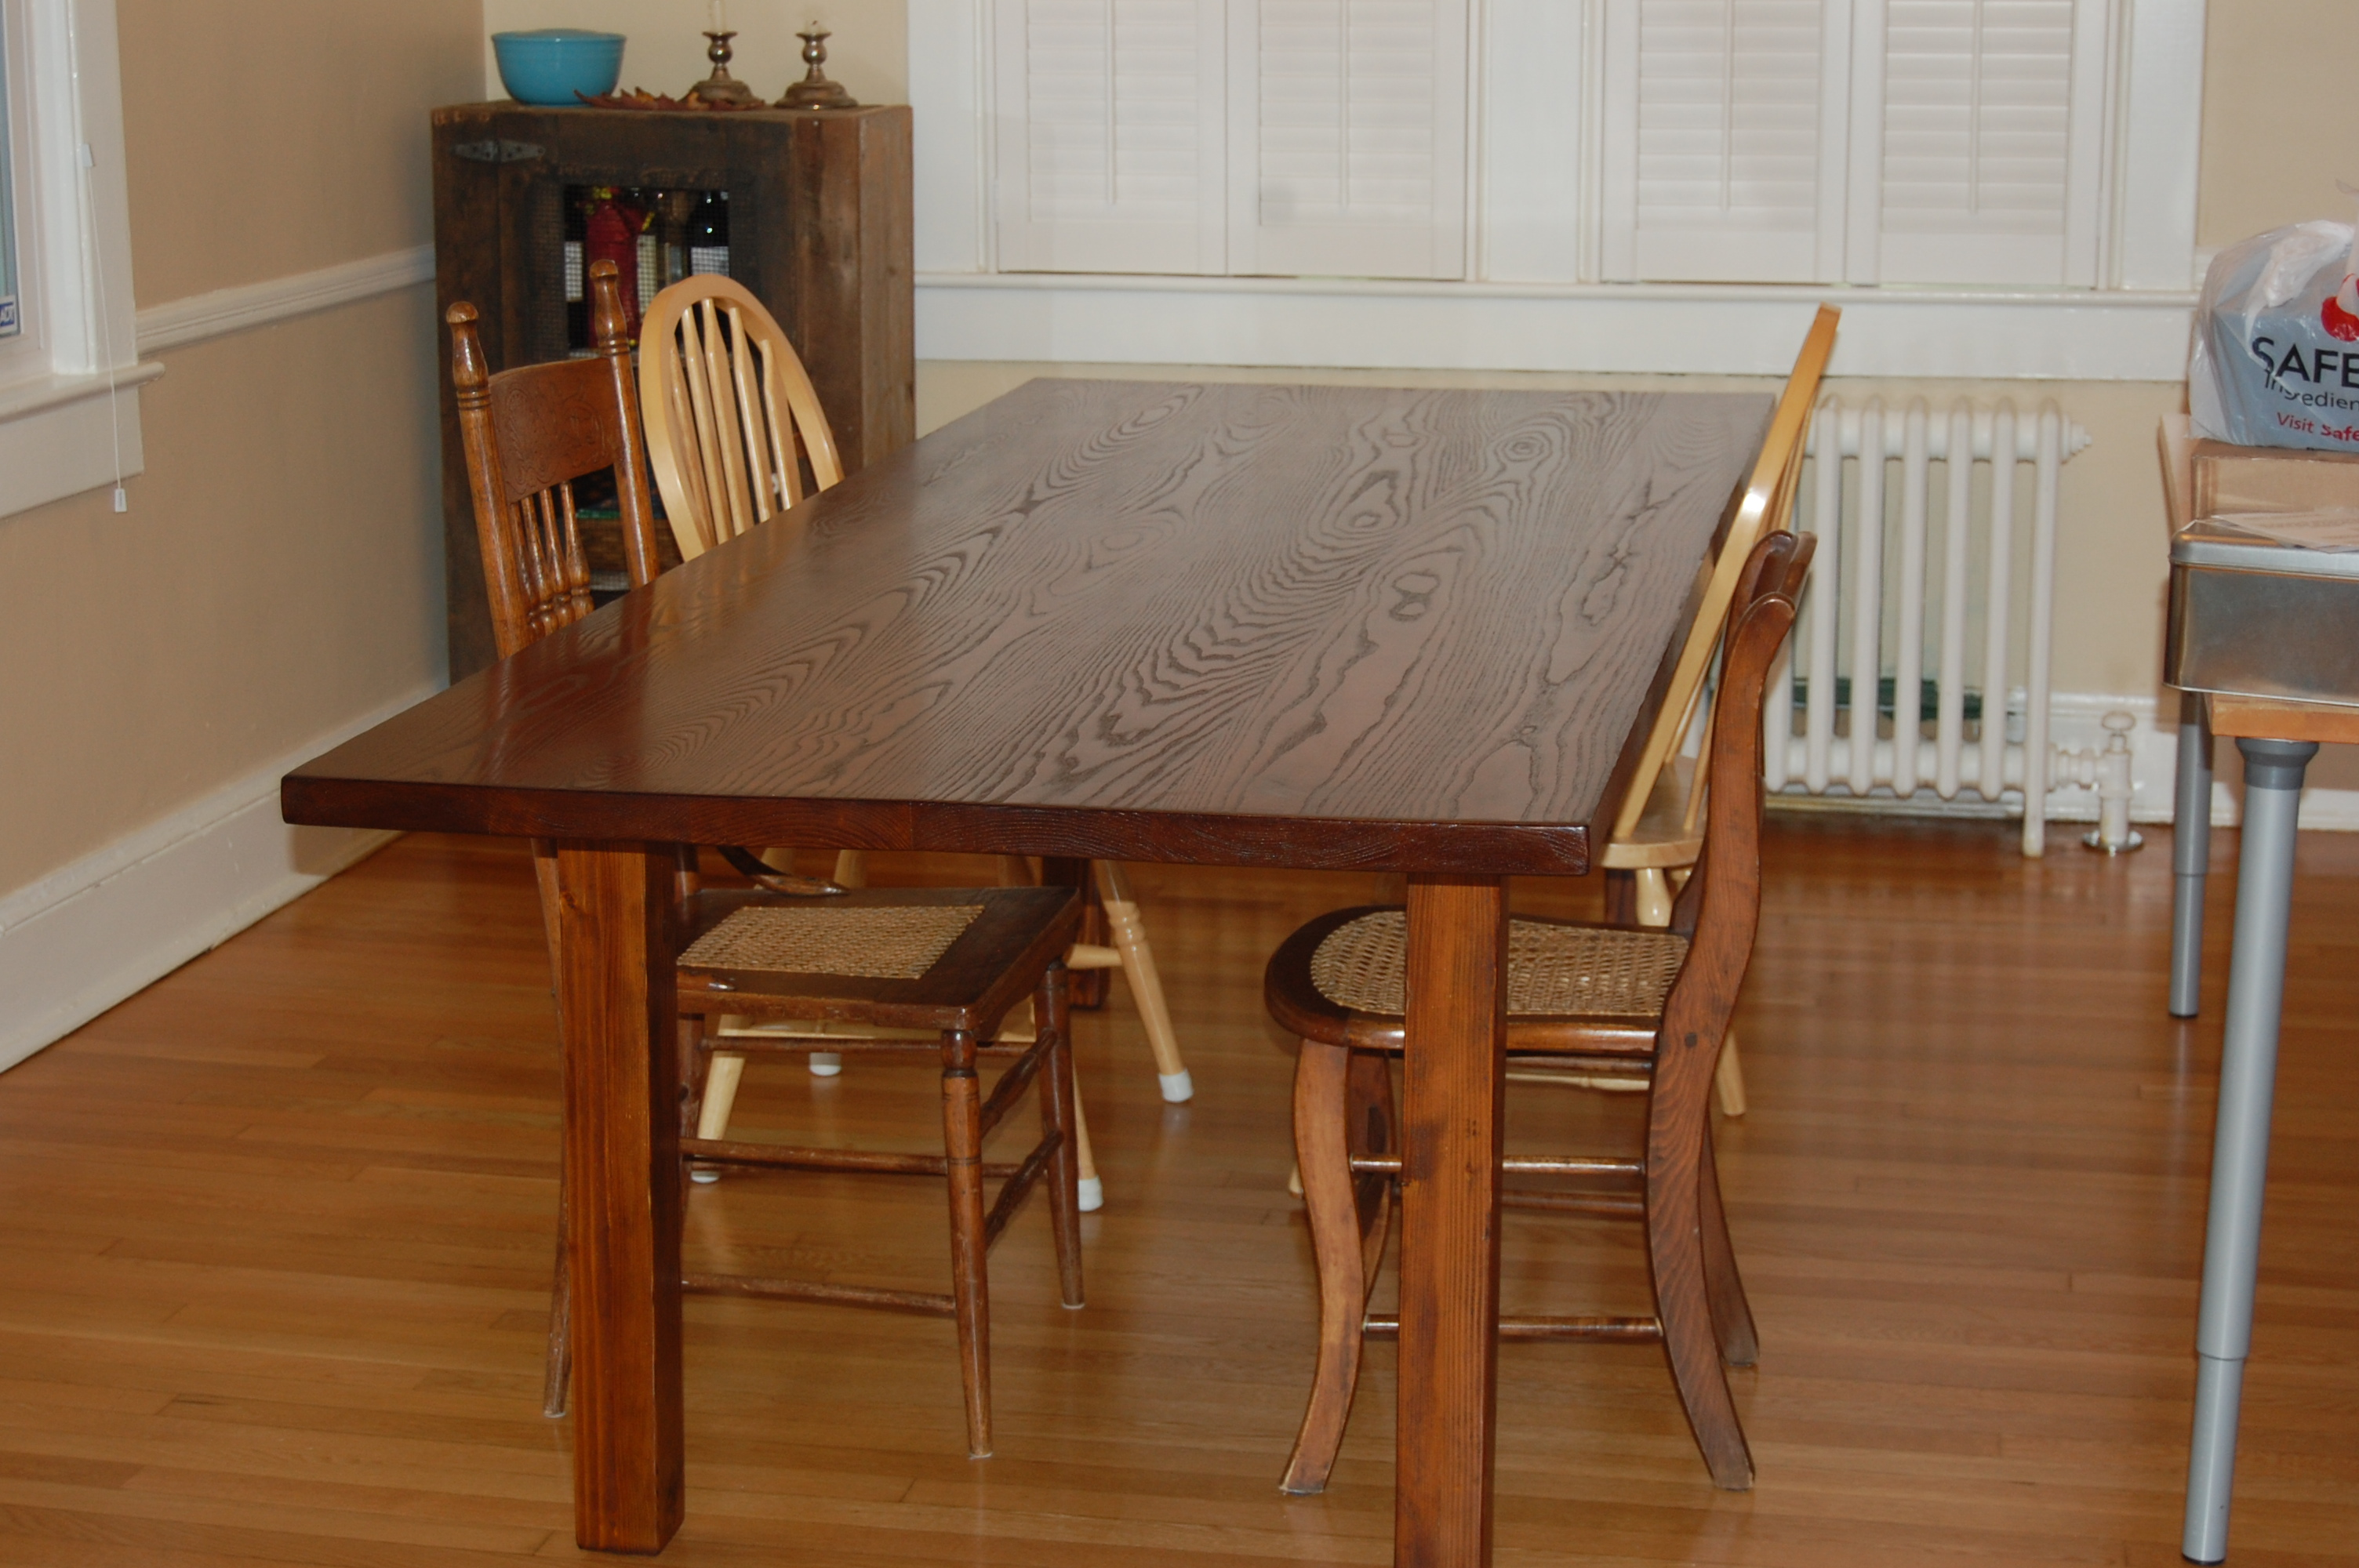 Ana White Farmhouse inspired table DIY Projects : DSC0022 12028129 from www.ana-white.com size 3008 x 2000 jpeg 1545kB